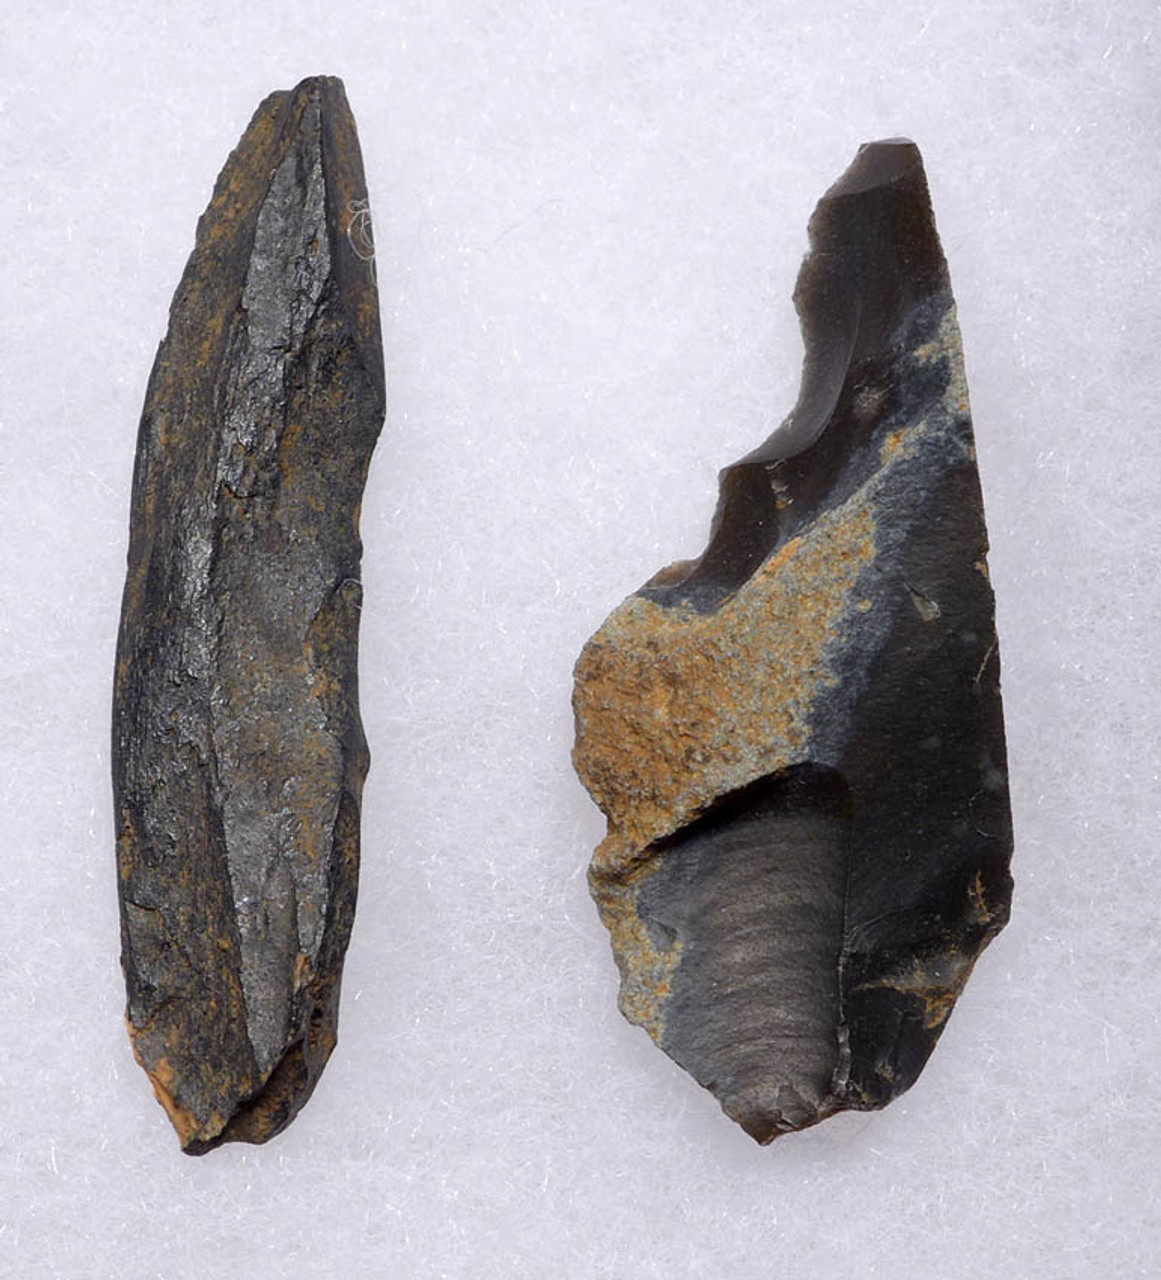 UP030 - SET OF TWO RARE UPPER PALEOLITHIC MAGDALENIAN STONE TOOLS FROM GROTTE DU PLACARD IN FRANCE